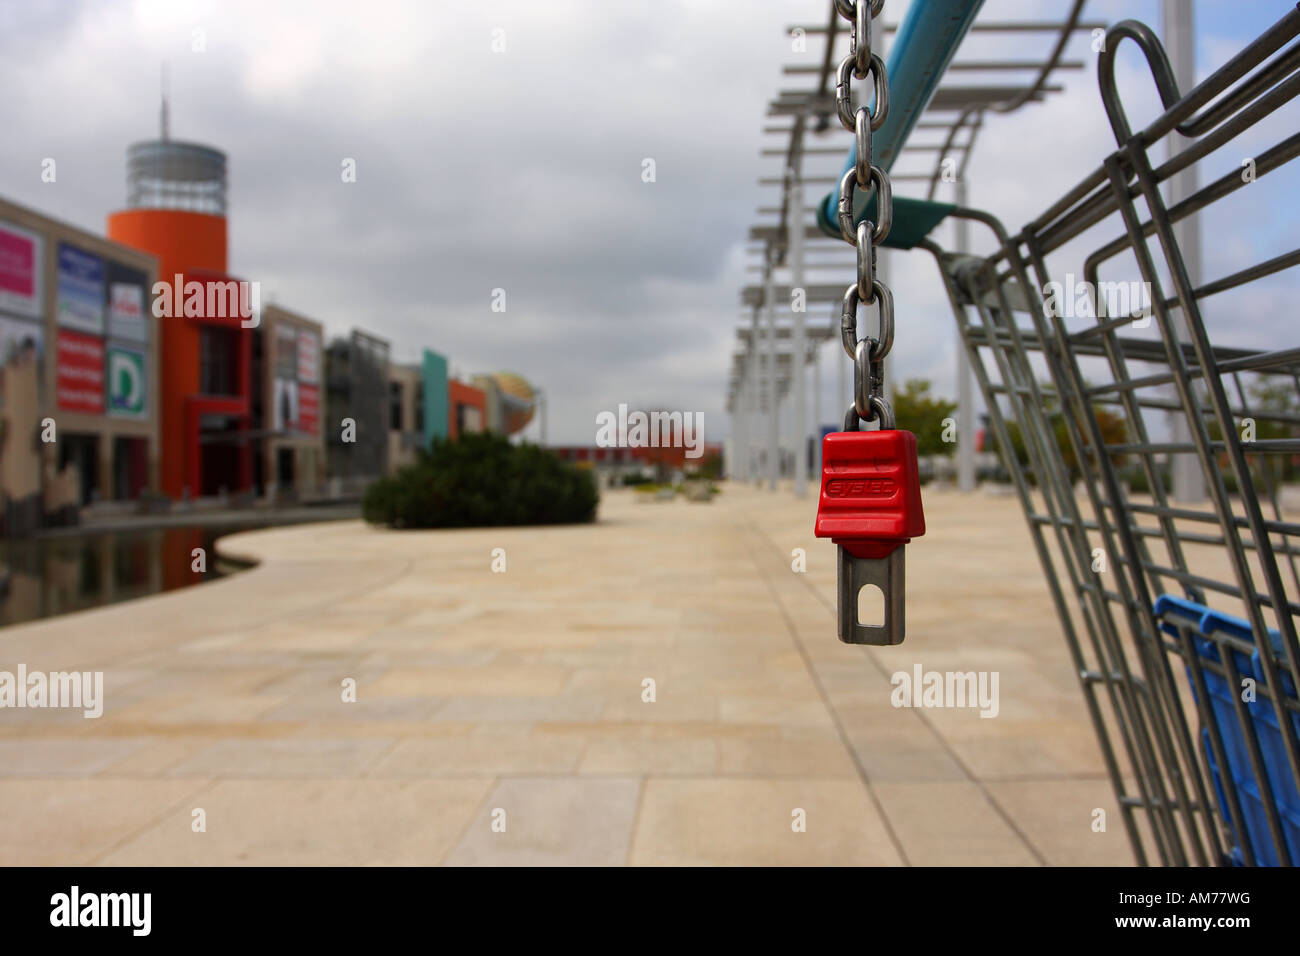 Red lock of a shopping trolley - Stock Image